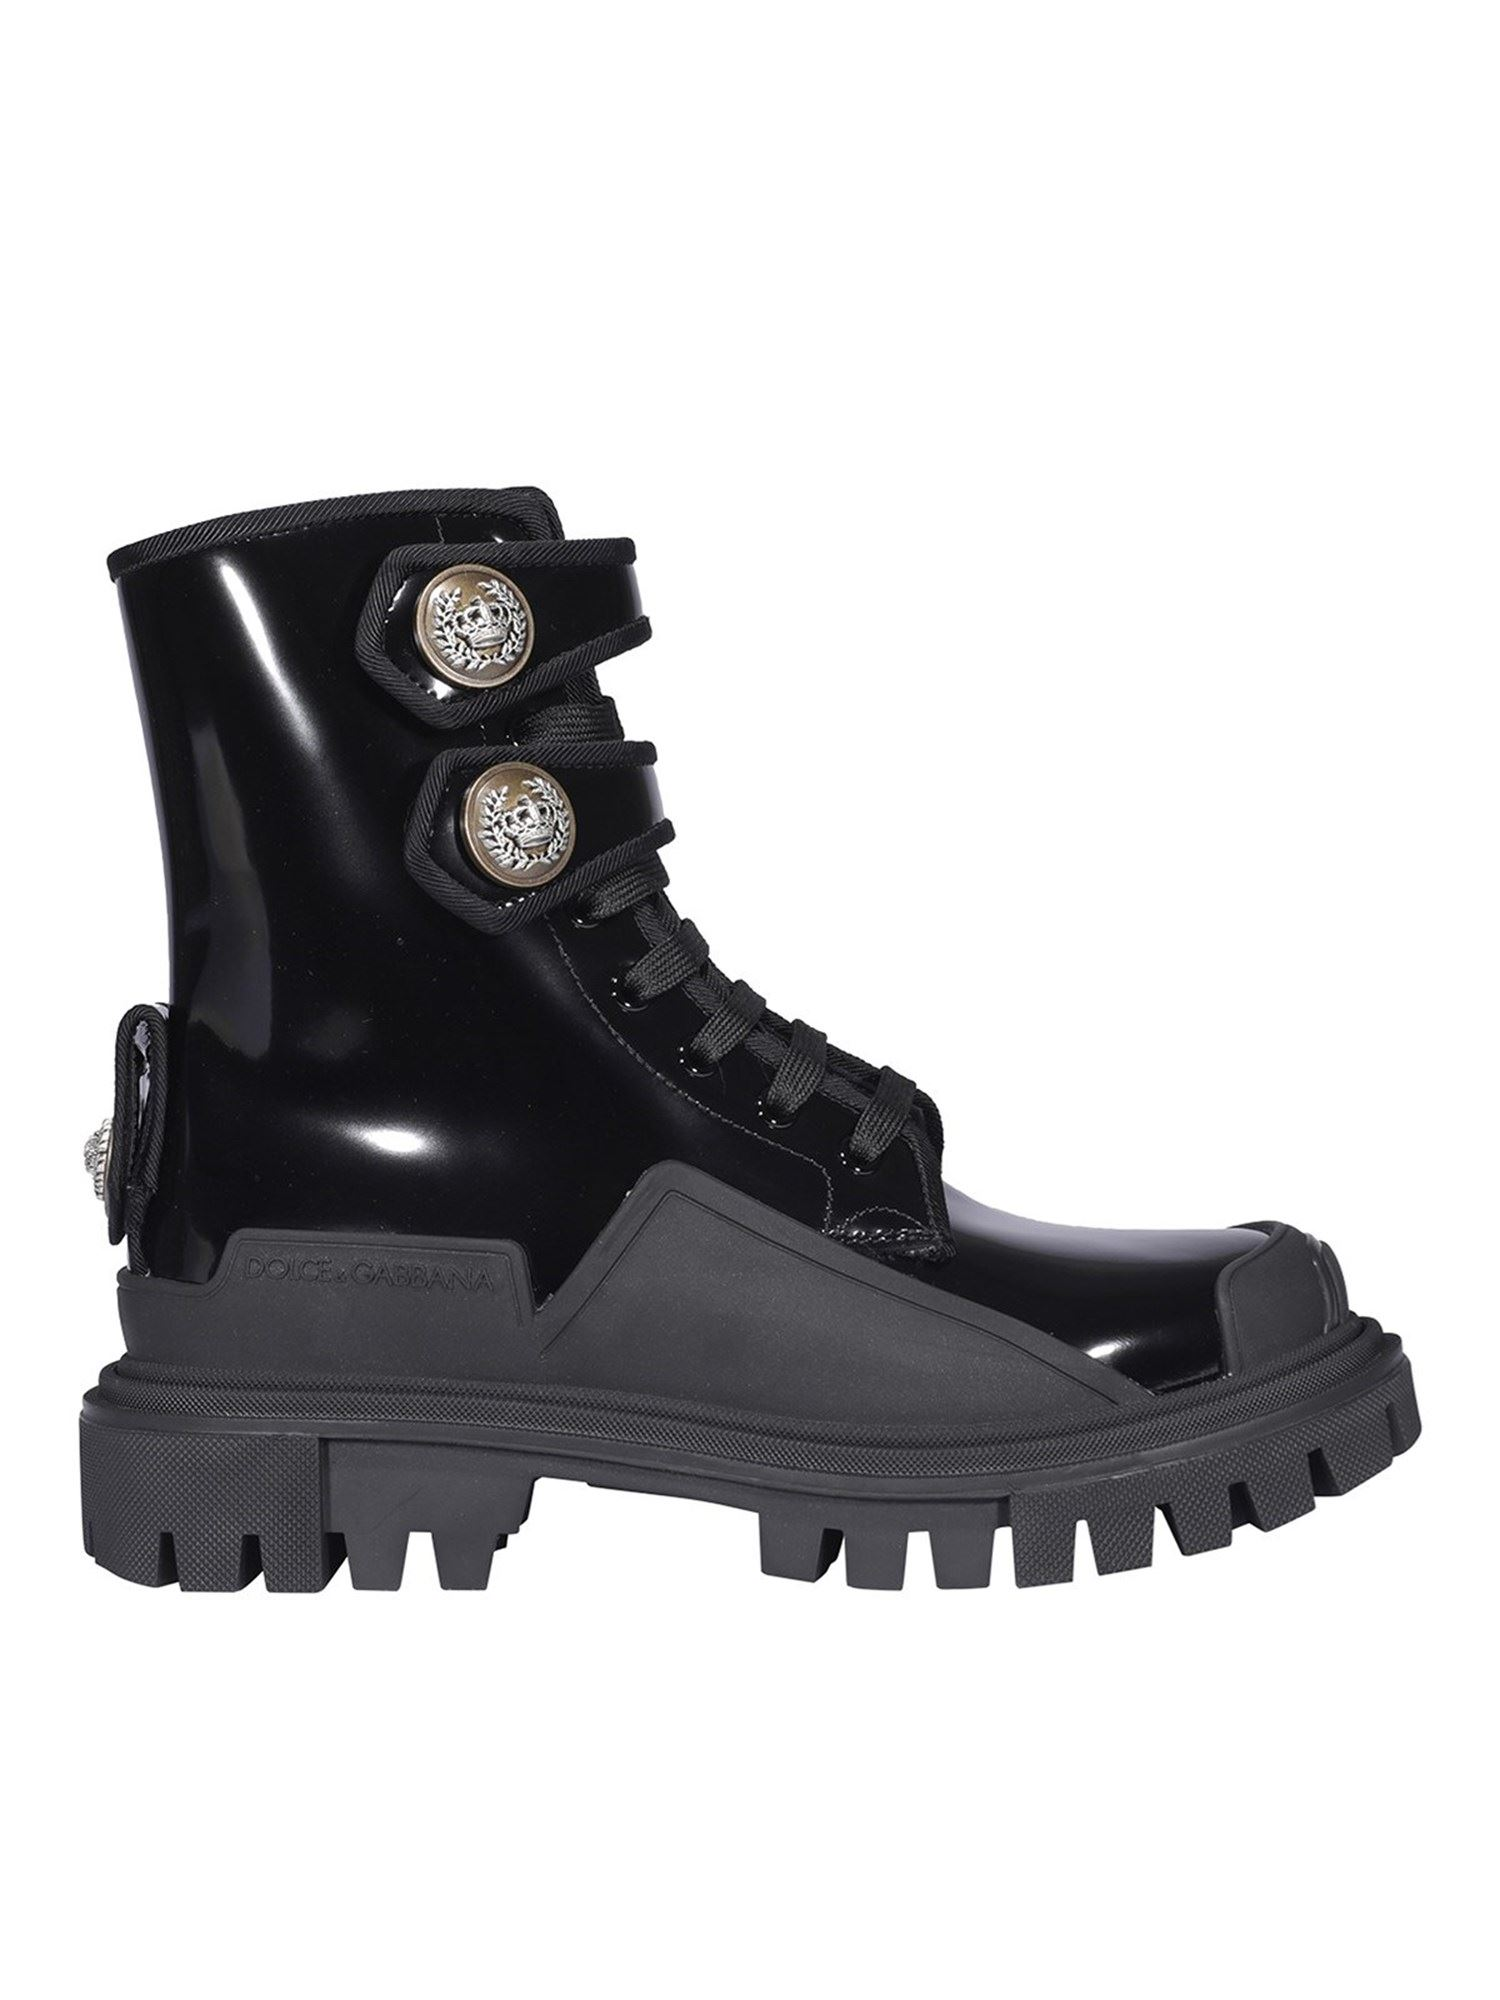 Dolce & Gabbana Boots HI TREKKING ANKLE BOOTS IN BLACK